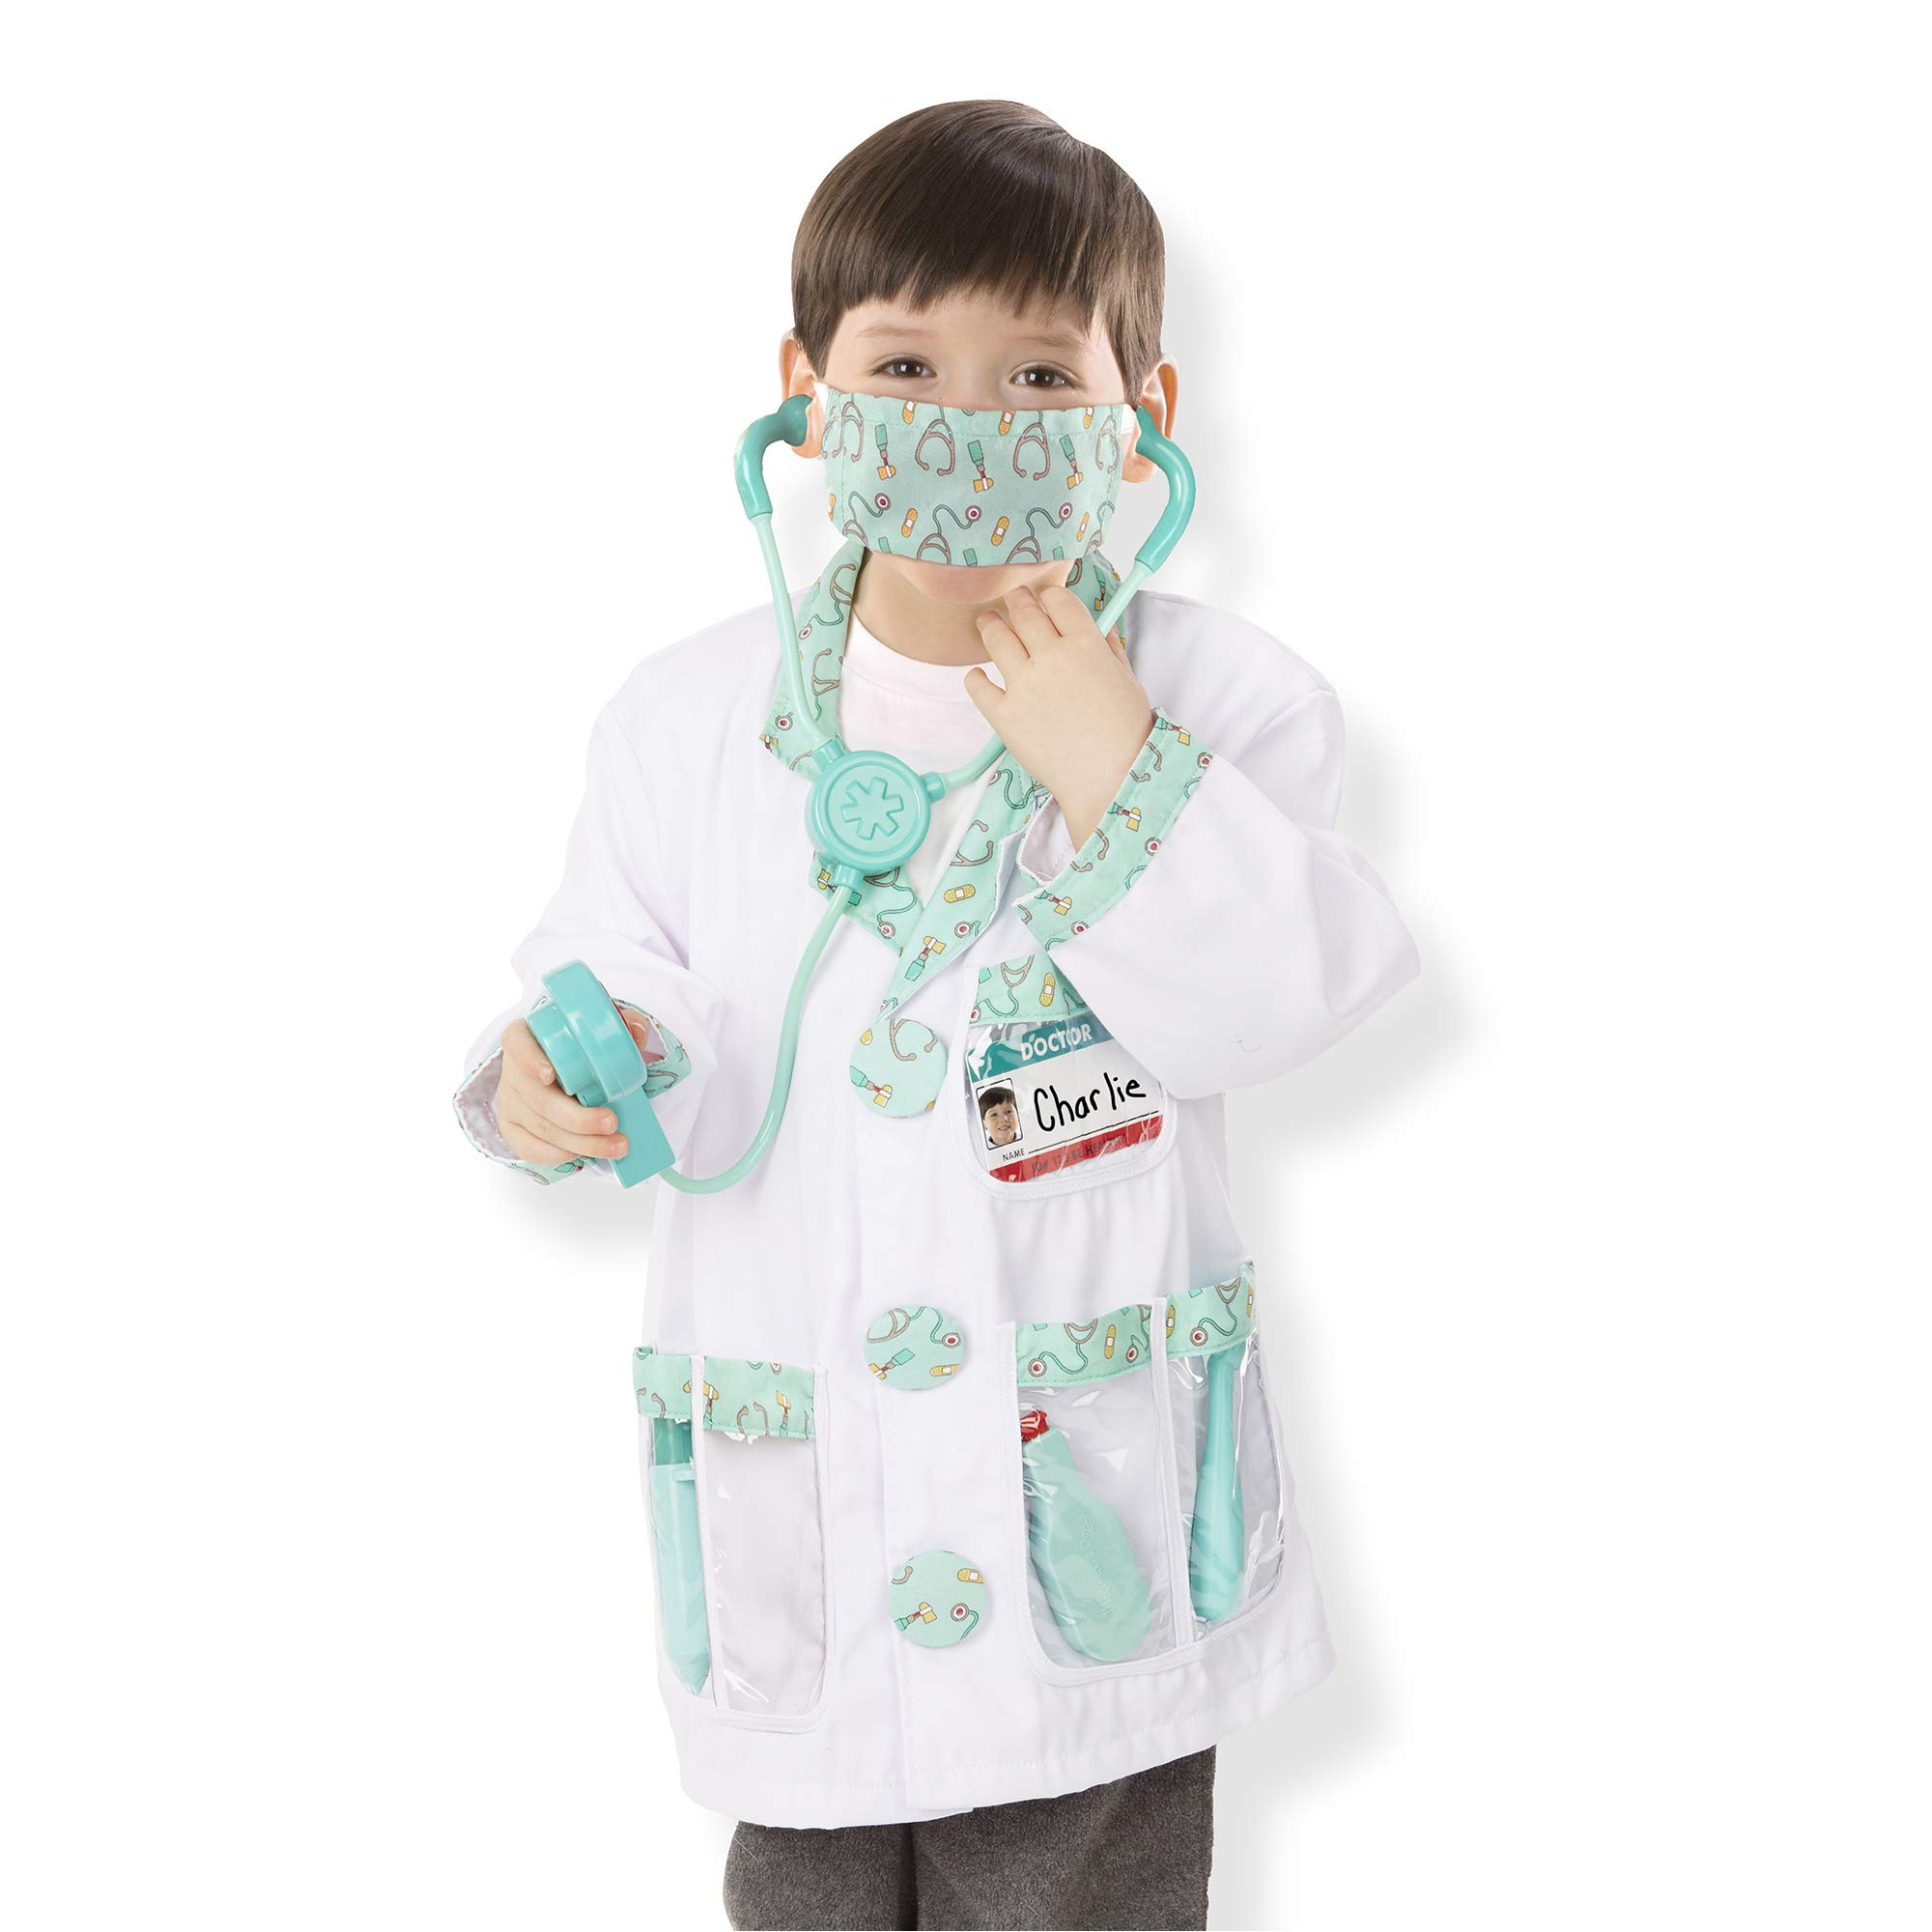 Melissa & Doug Doctor Role-Play Costume Set, Pretend Play, Materials, Machine Washable, 17.5″ H × 24″ W × 0.75″ L